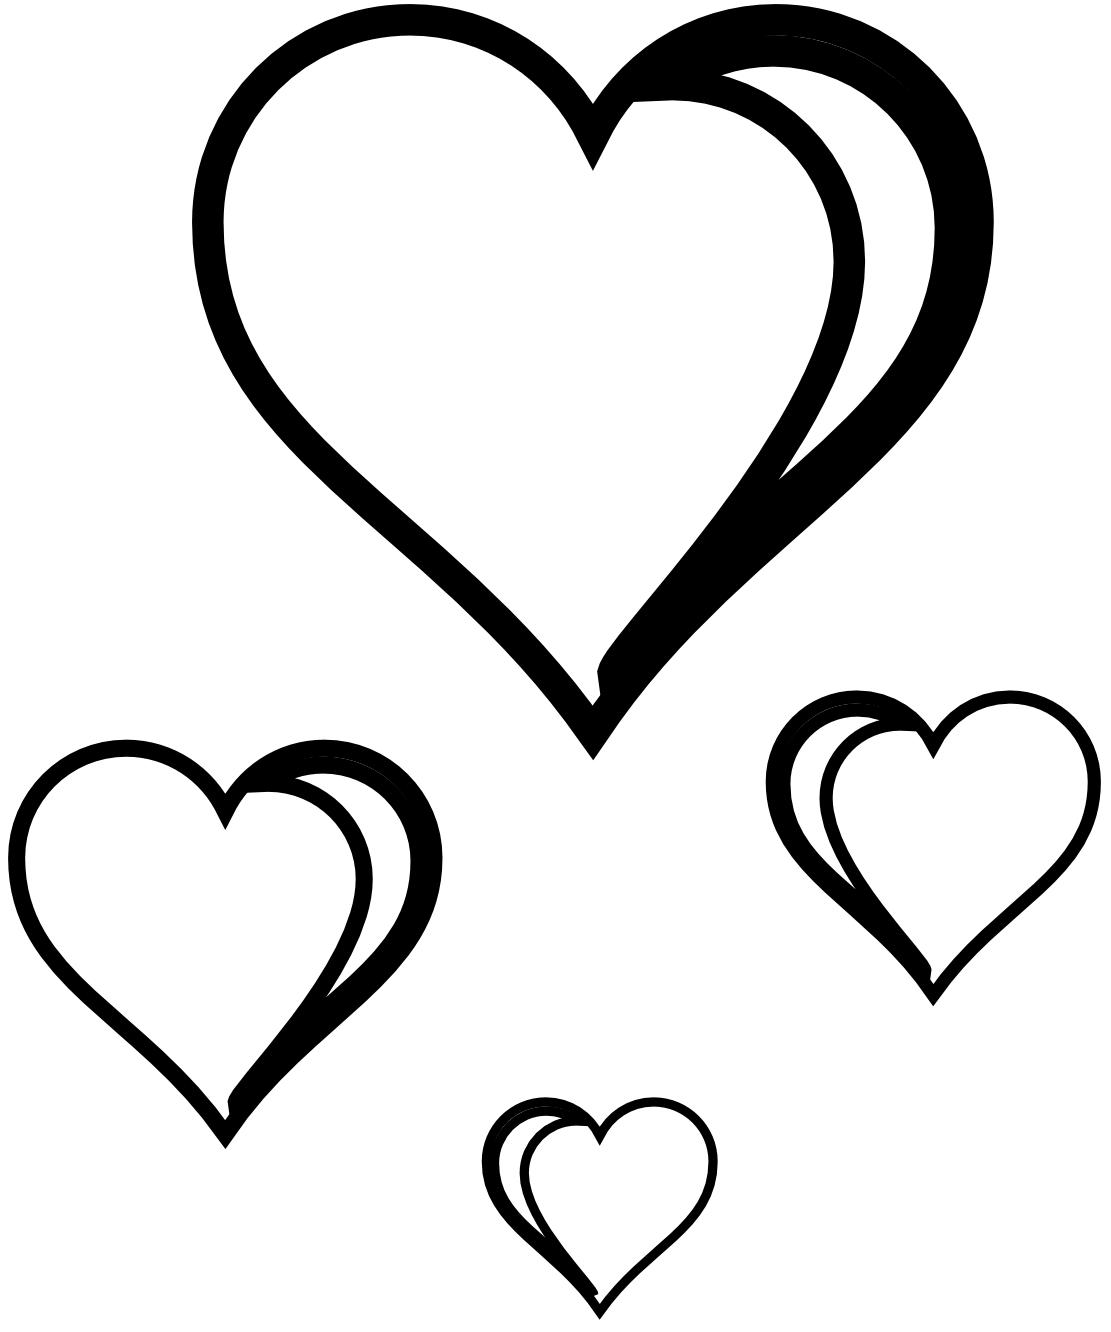 Line Art Love Heart : Clipart heart black and white panda free